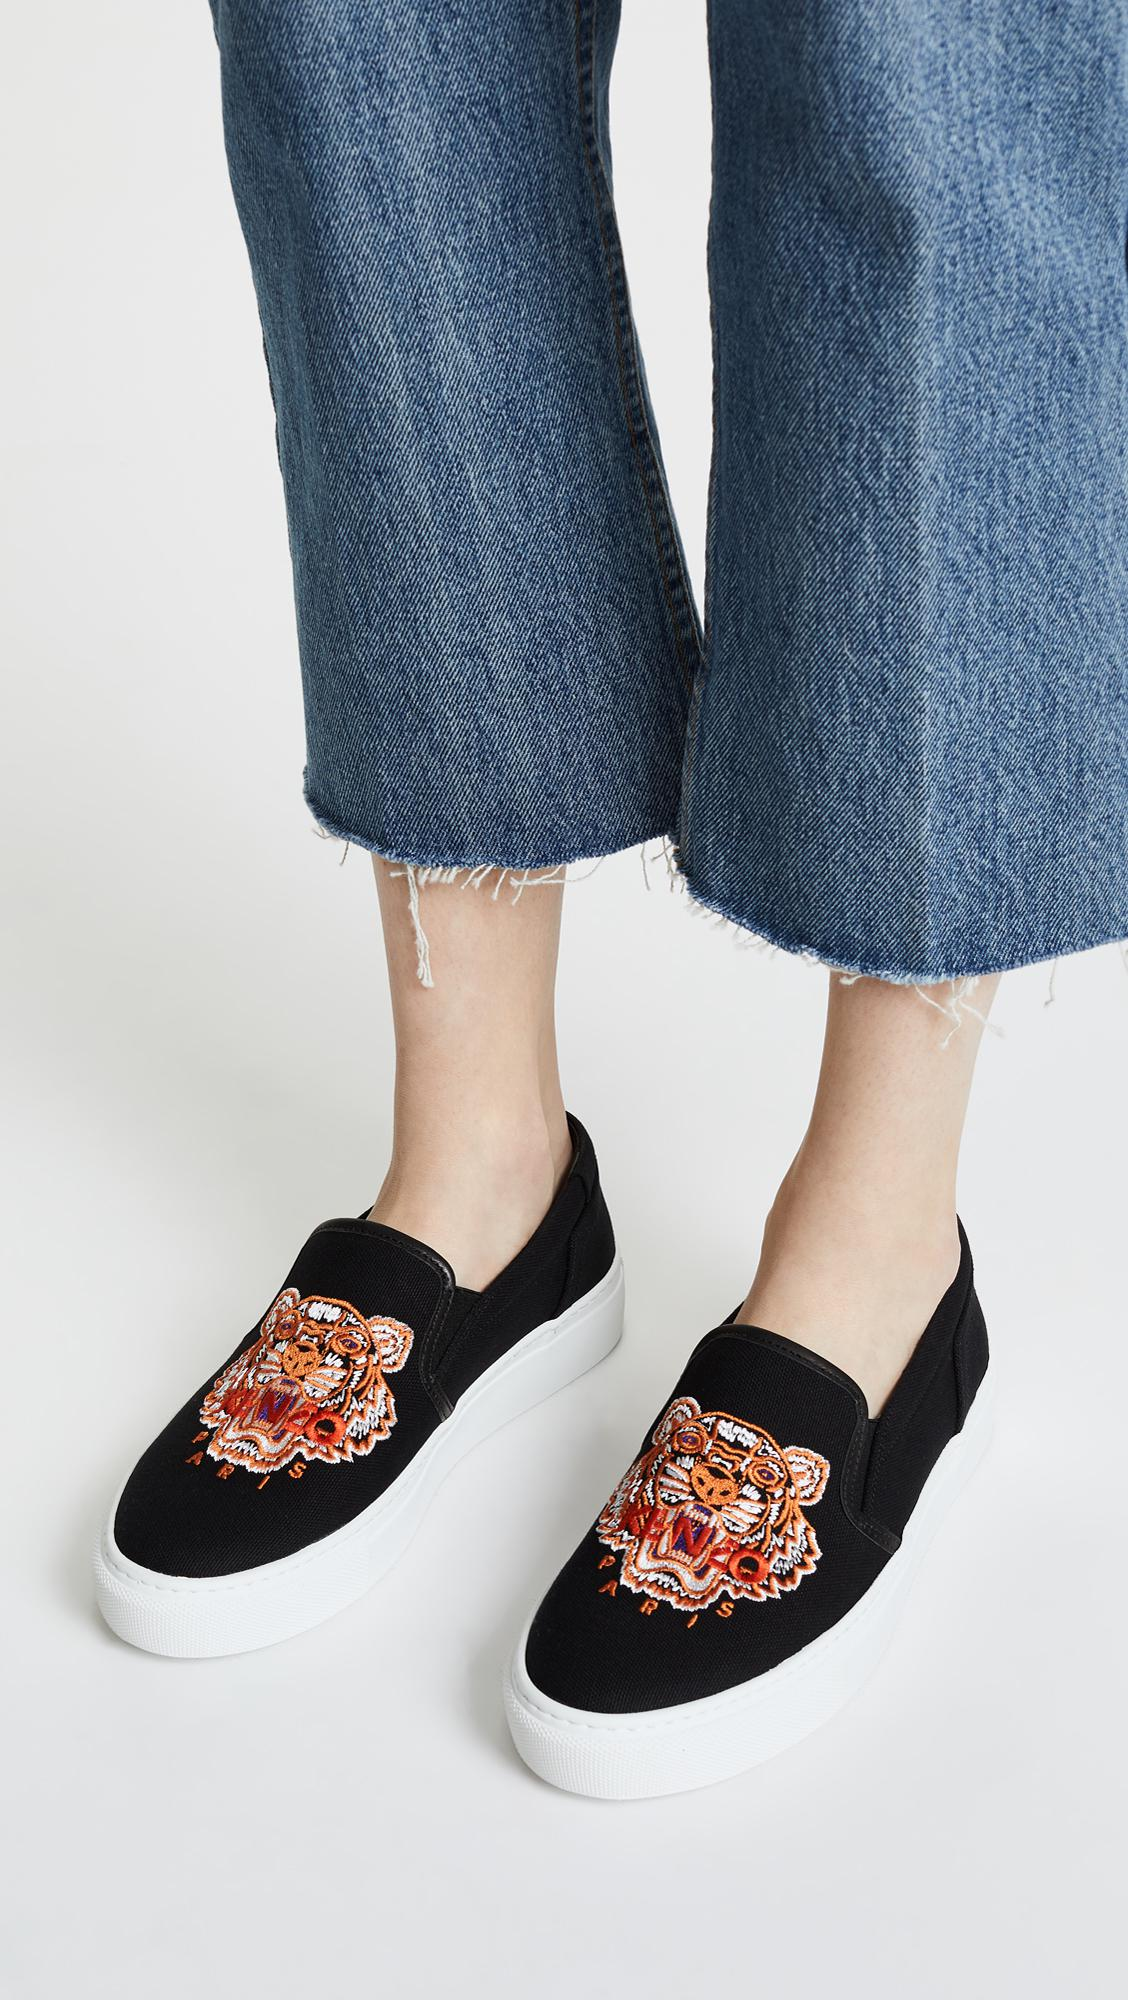 Fashion Style Online Kenzo Women's K-Skate Tiger Slip-On Trainers Inexpensive Sneakernews Online 2018 New Cheap Price Pay With Paypal Cheap Price gP8eSe